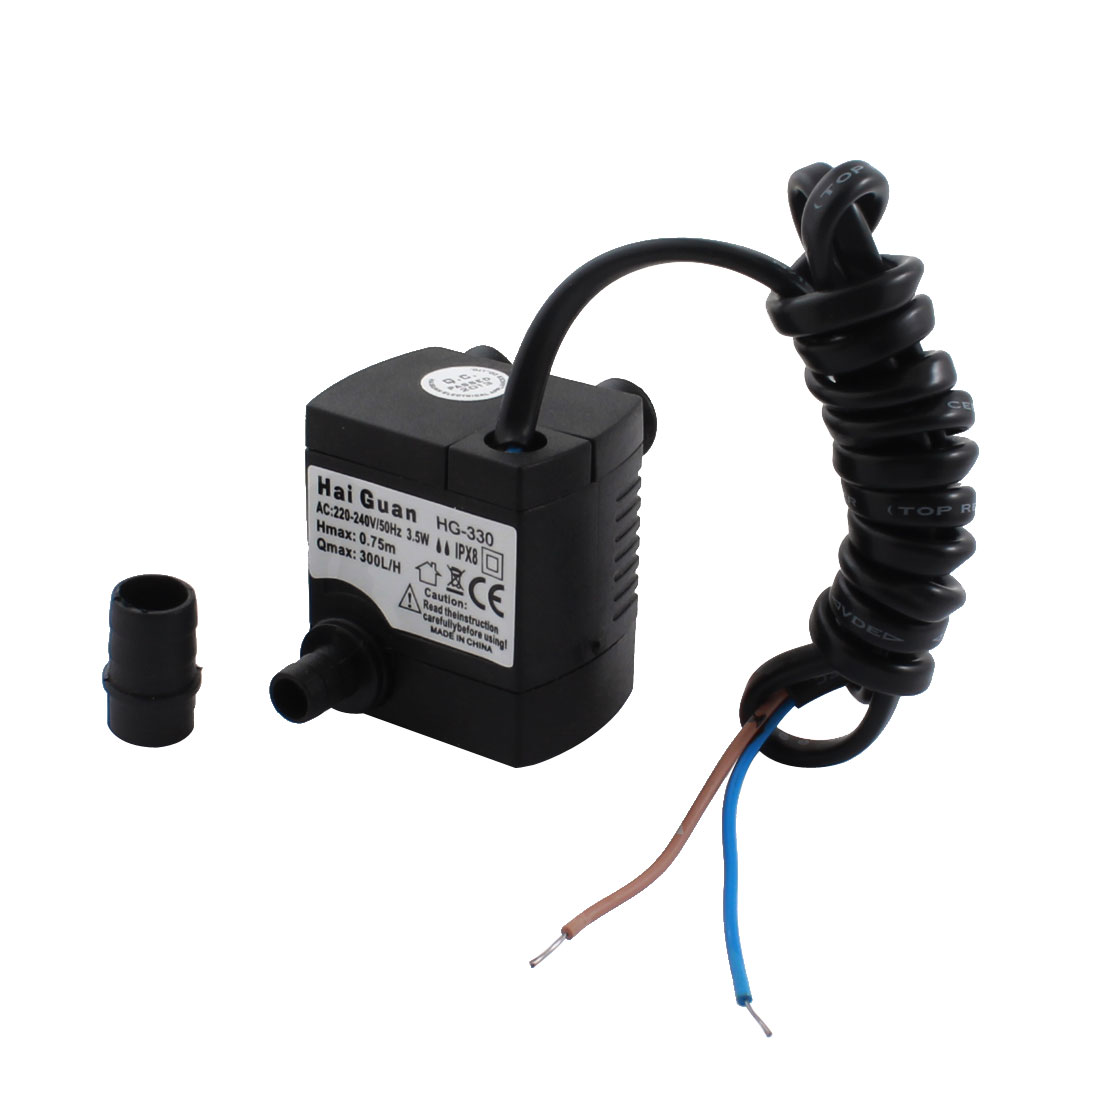 Refrigerator Part 300L/min 0.75m Mini Brushless Submersible Pump Flow Controller AC220-240V 3.5W